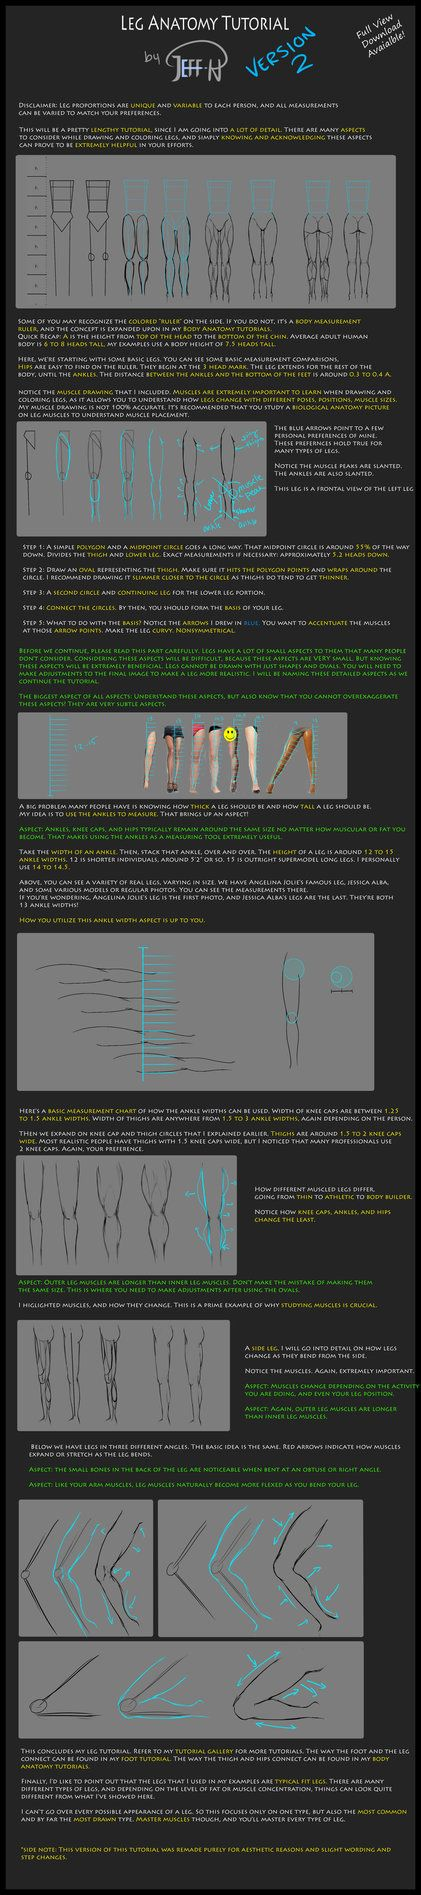 Leg Anatomy Tutorial (Version 2) by Jeff-H on DeviantArt